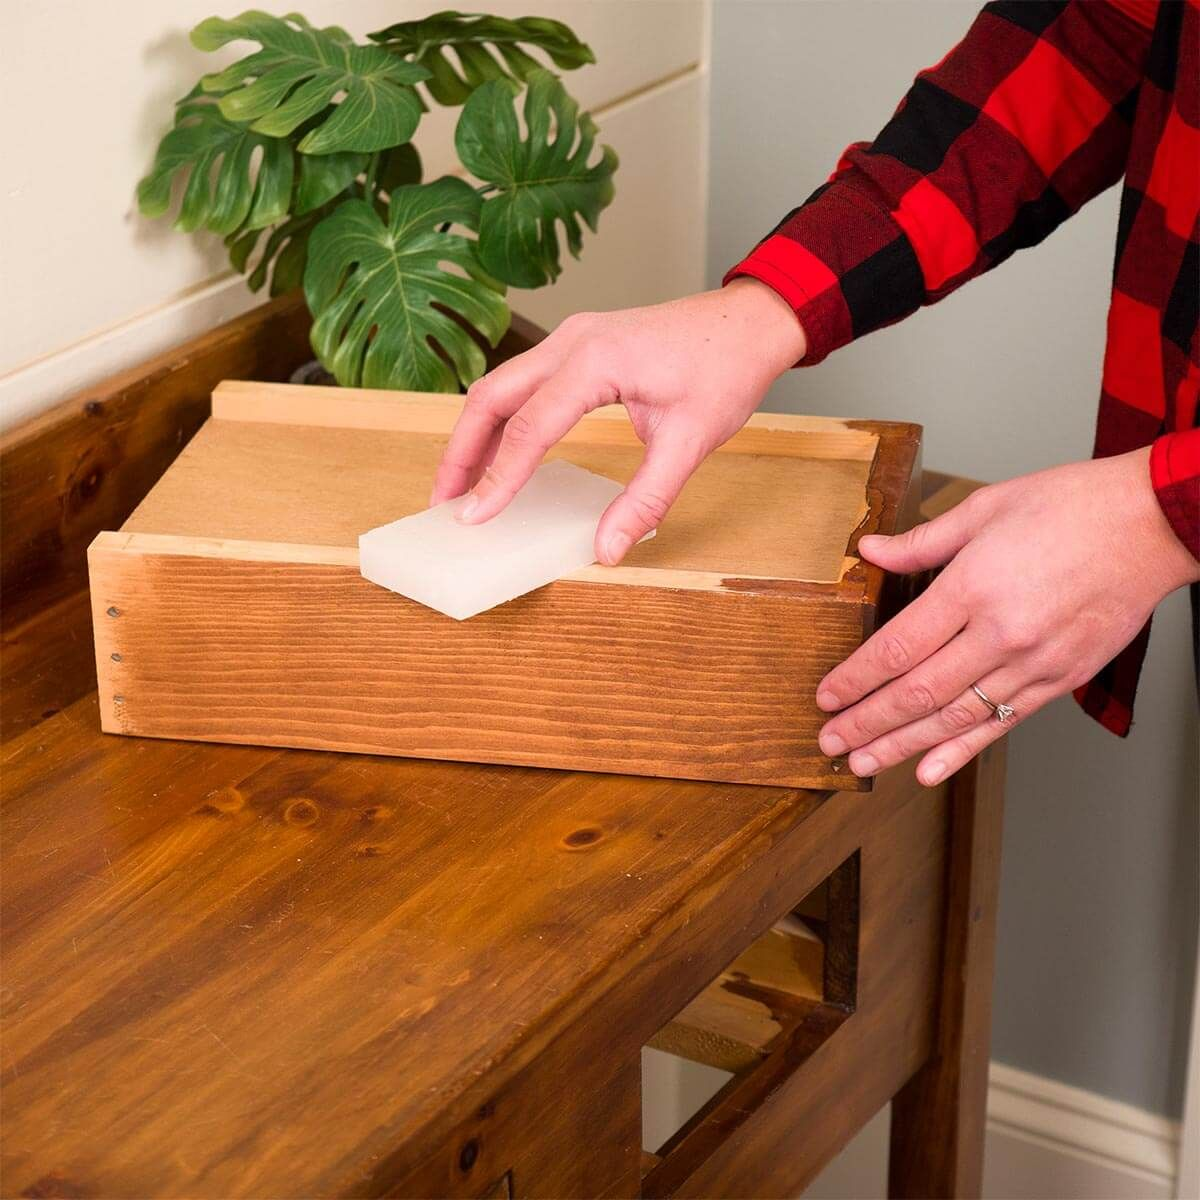 Gulf Wax For Sticky Drawers Home Repairs Wooden Drawers Diy Home Repair